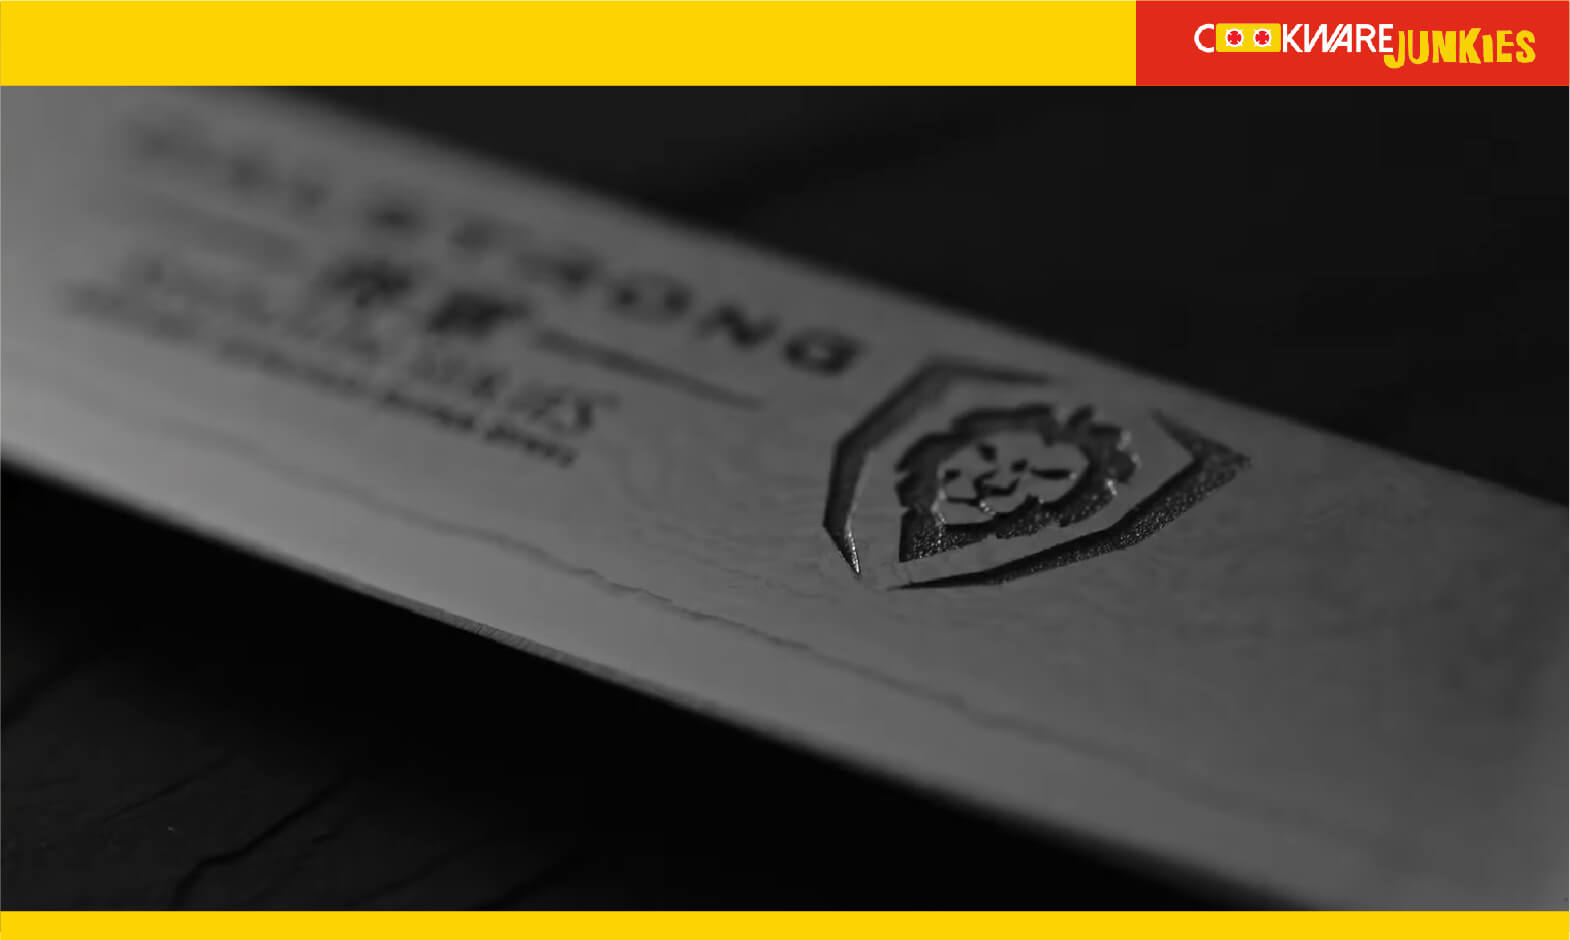 Dalstrong logo on Knive with black background